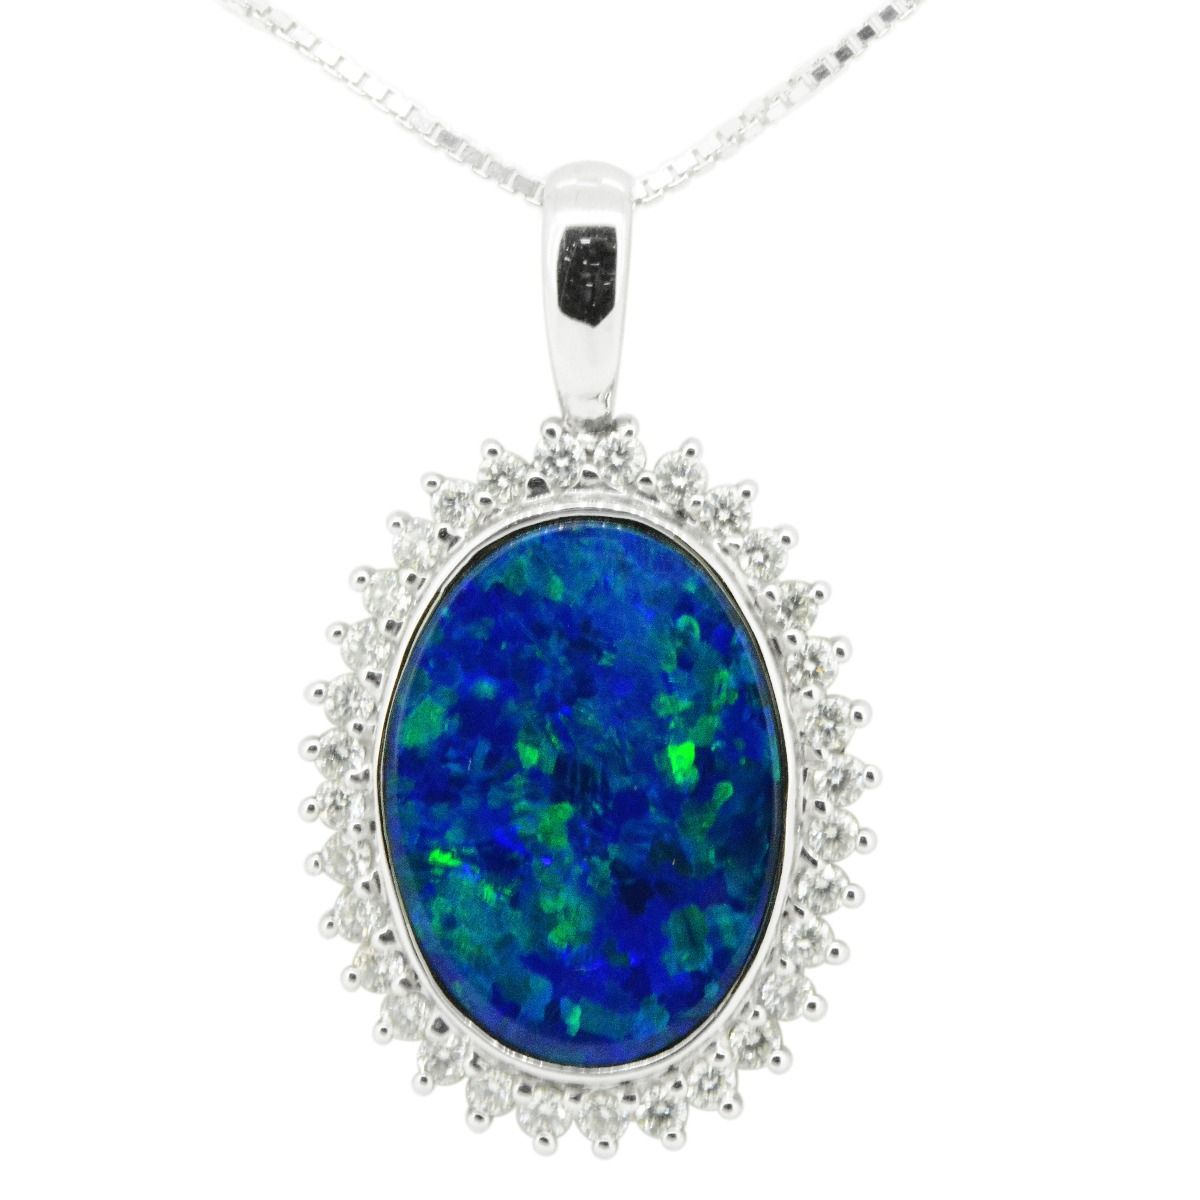 14ct White Gold Doublet Opal Pendant Surrounded By diamonds